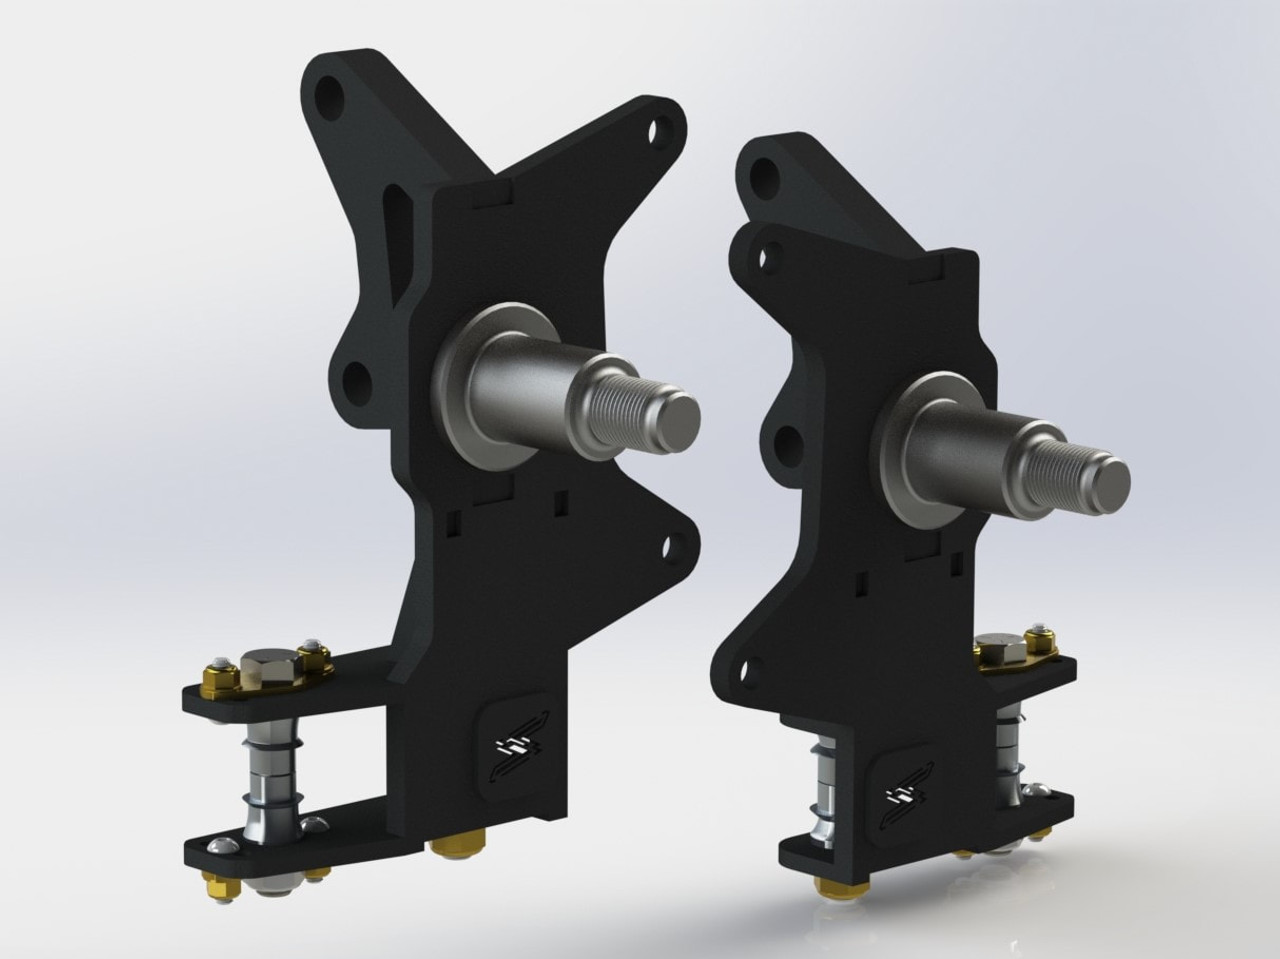 A close up of the spindles in the 999 Angle Kit for 2005-2014 Ford Mustang